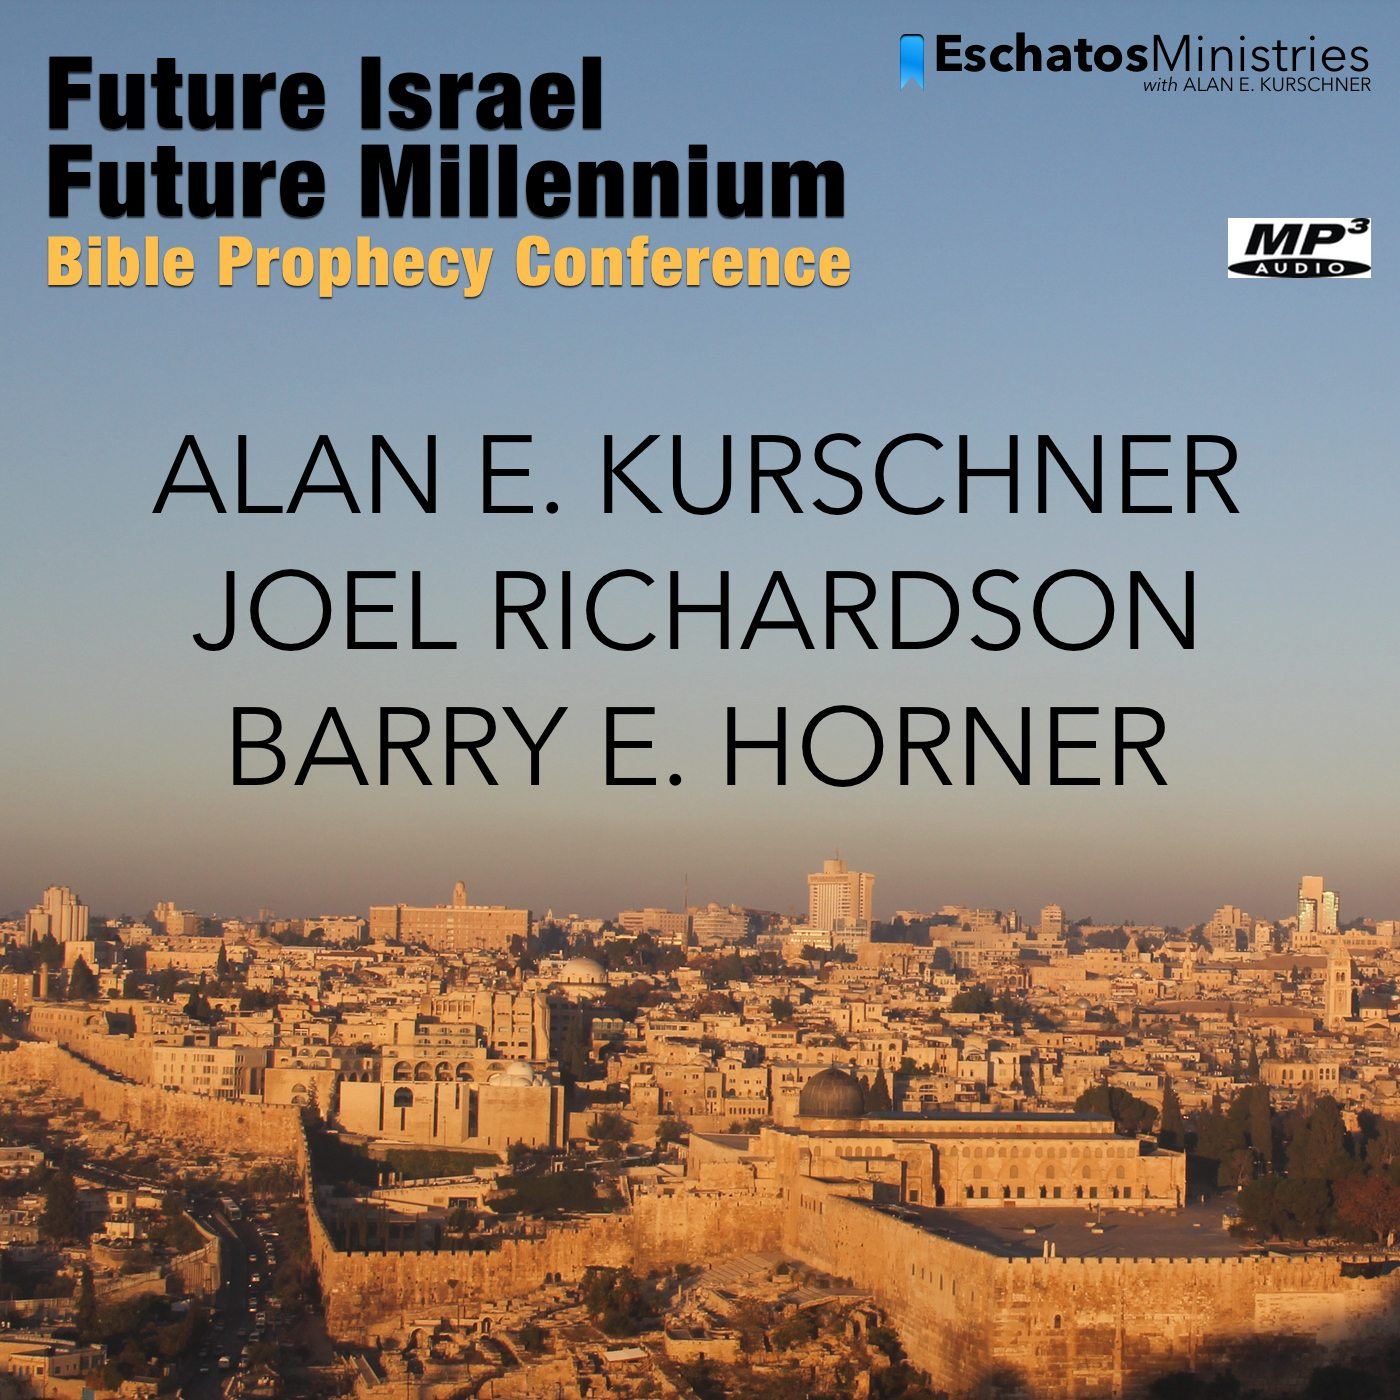 Audio Available! Future Israel, Future Millennium – Bible Prophecy Conference